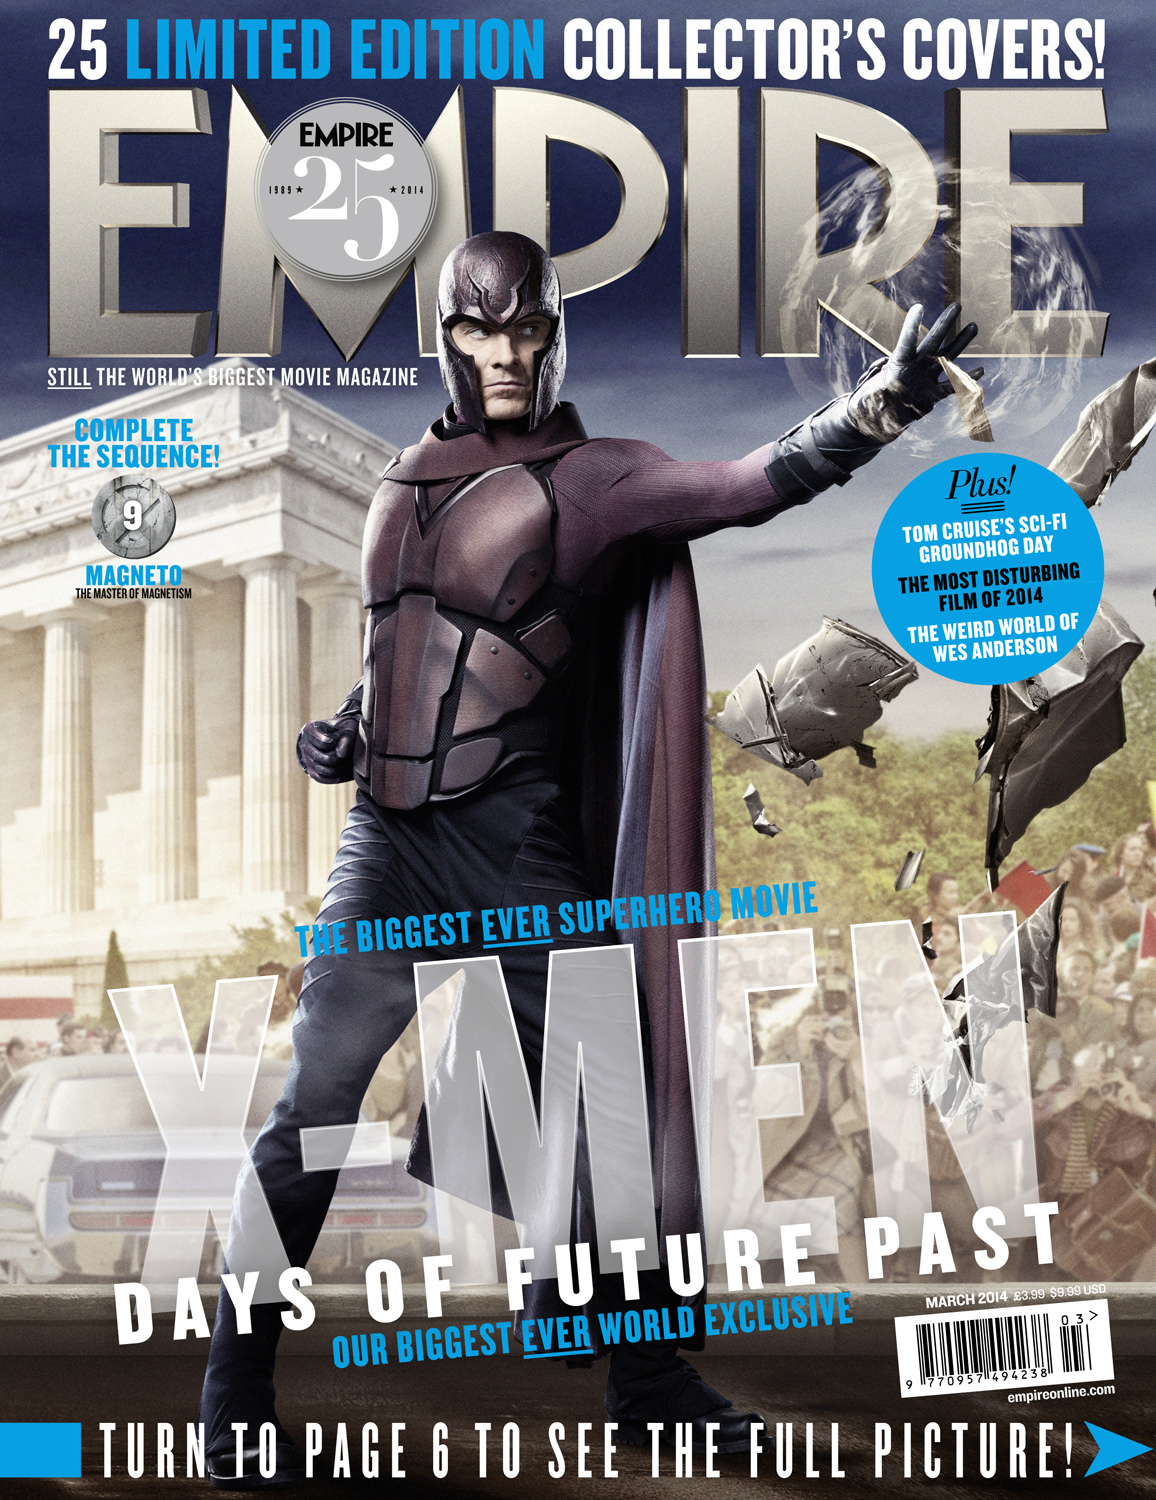 Empire - XDOFP Cover - 009 - Magneto